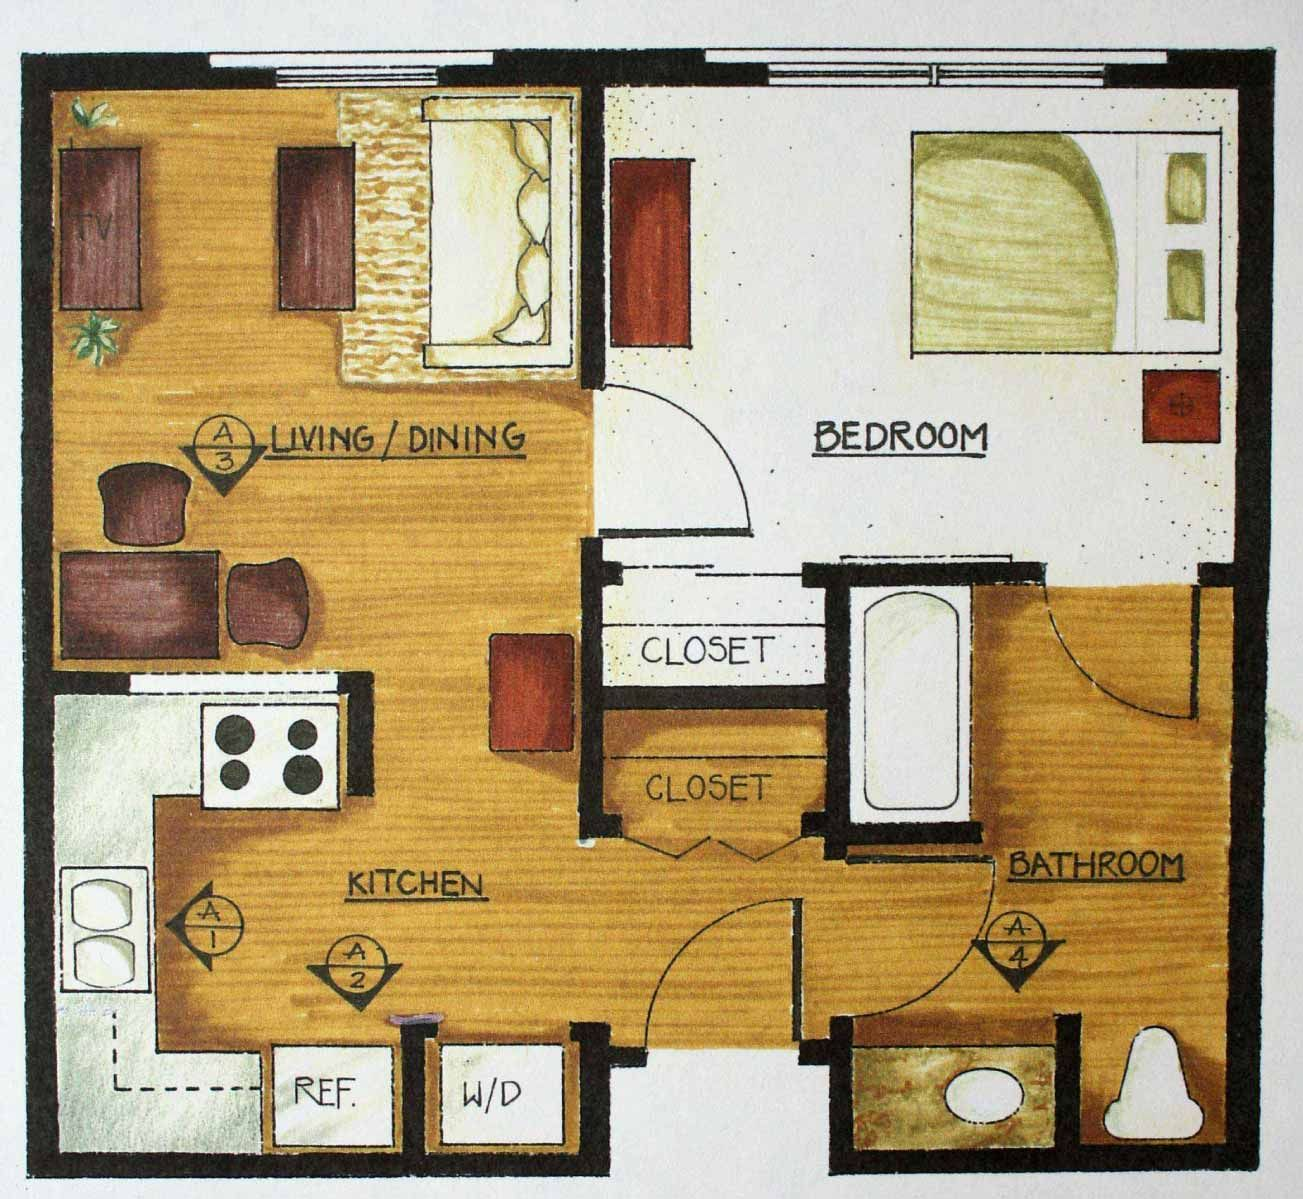 Home Design Ideas Floor Plans: Adorable Style Of Simple Home Architecture